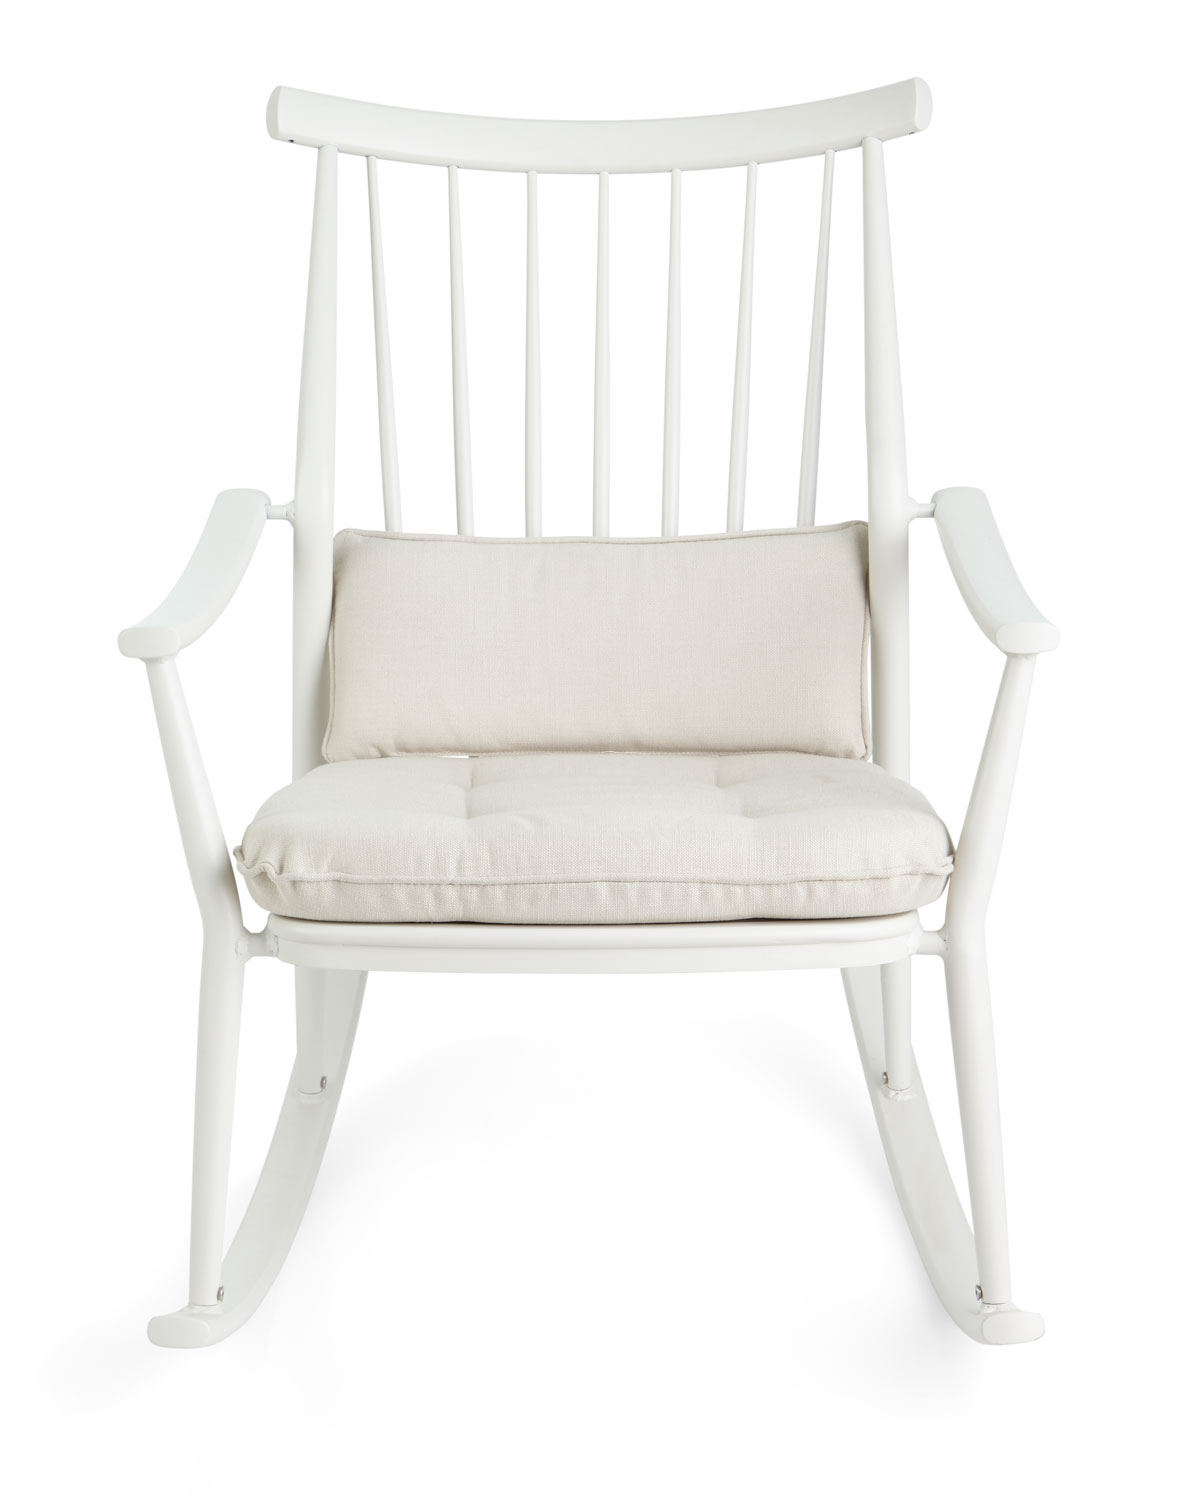 Darrow Rocker Chairs Set of 2